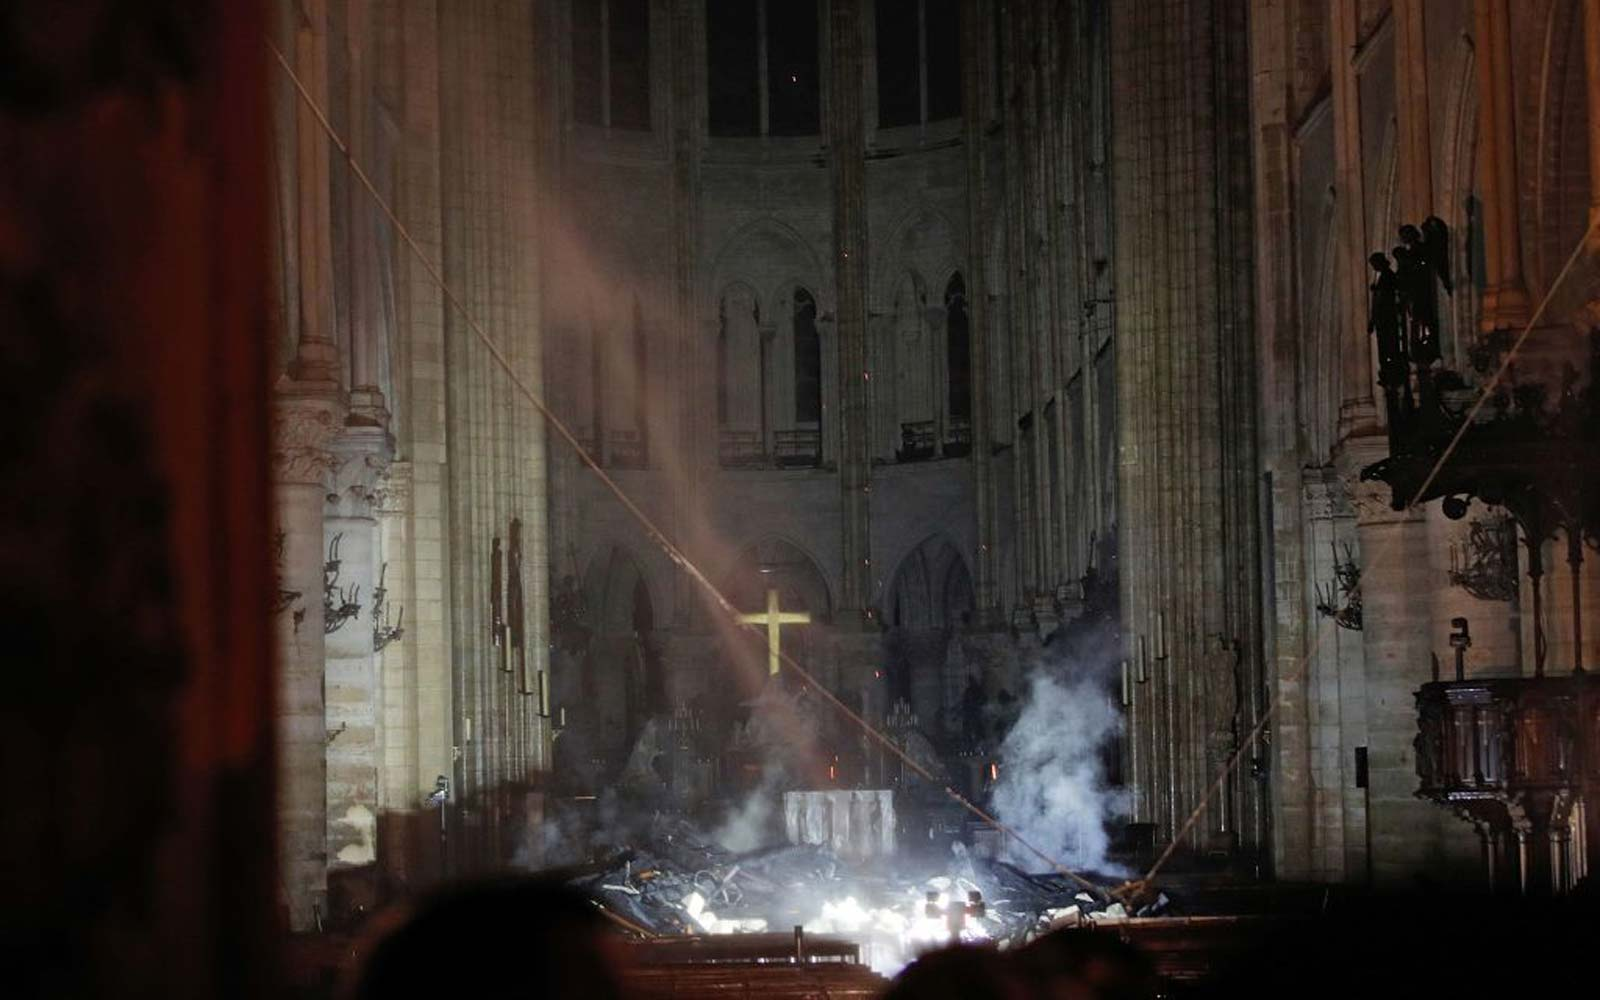 Powerful Photos Show a Cross Still Standing Among the Ashes Inside Notre Dame Cathedral